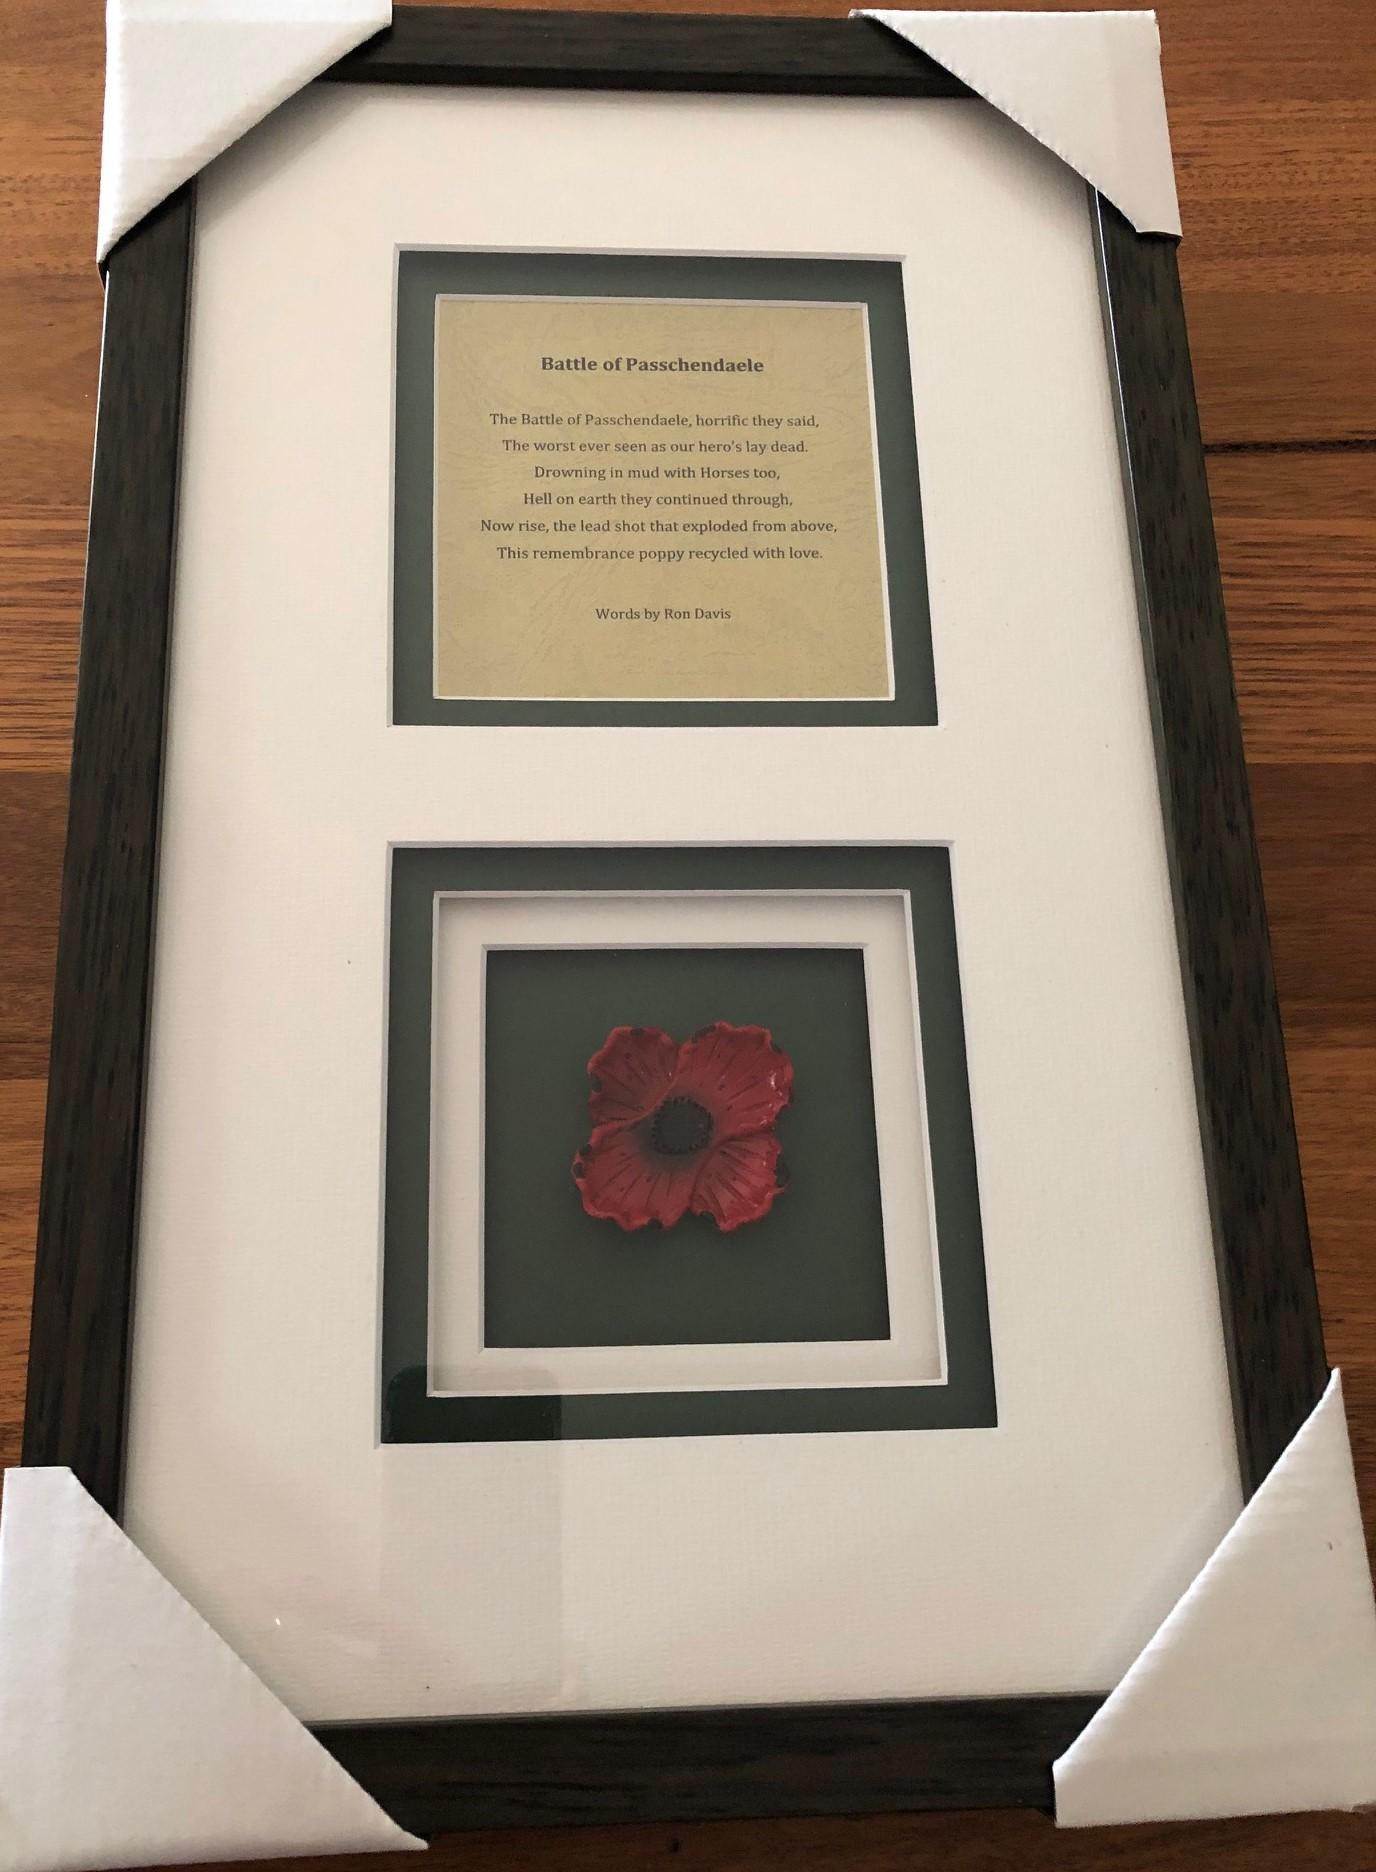 Cams Cause – Remembrance Poppy Made from Lead from Battlefields of Europe